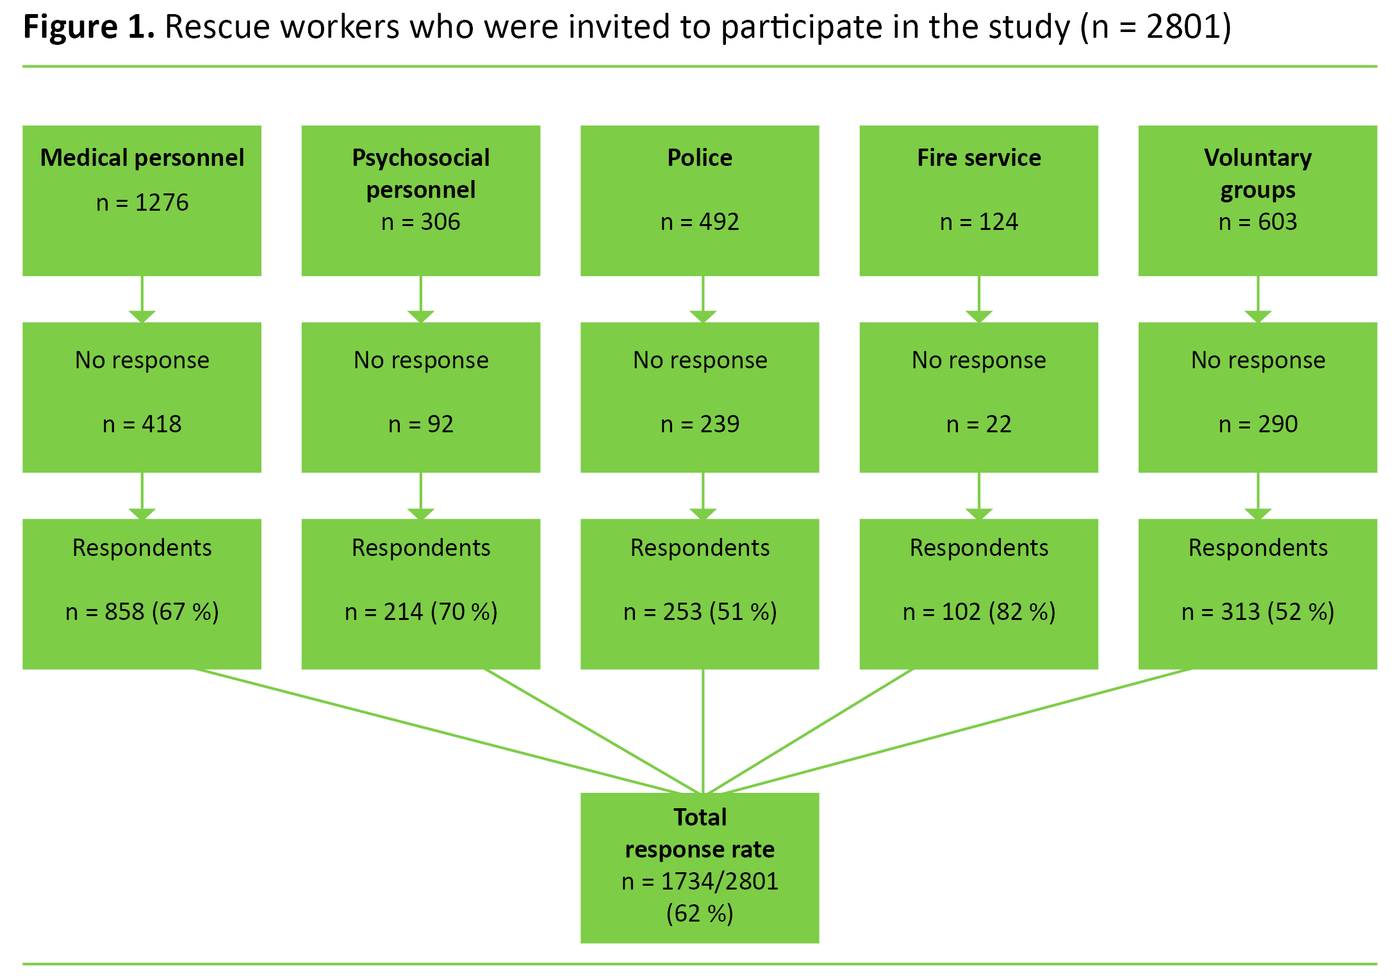 Figure 1. Rescue workers who were invited to participate in the study (n = 2801)